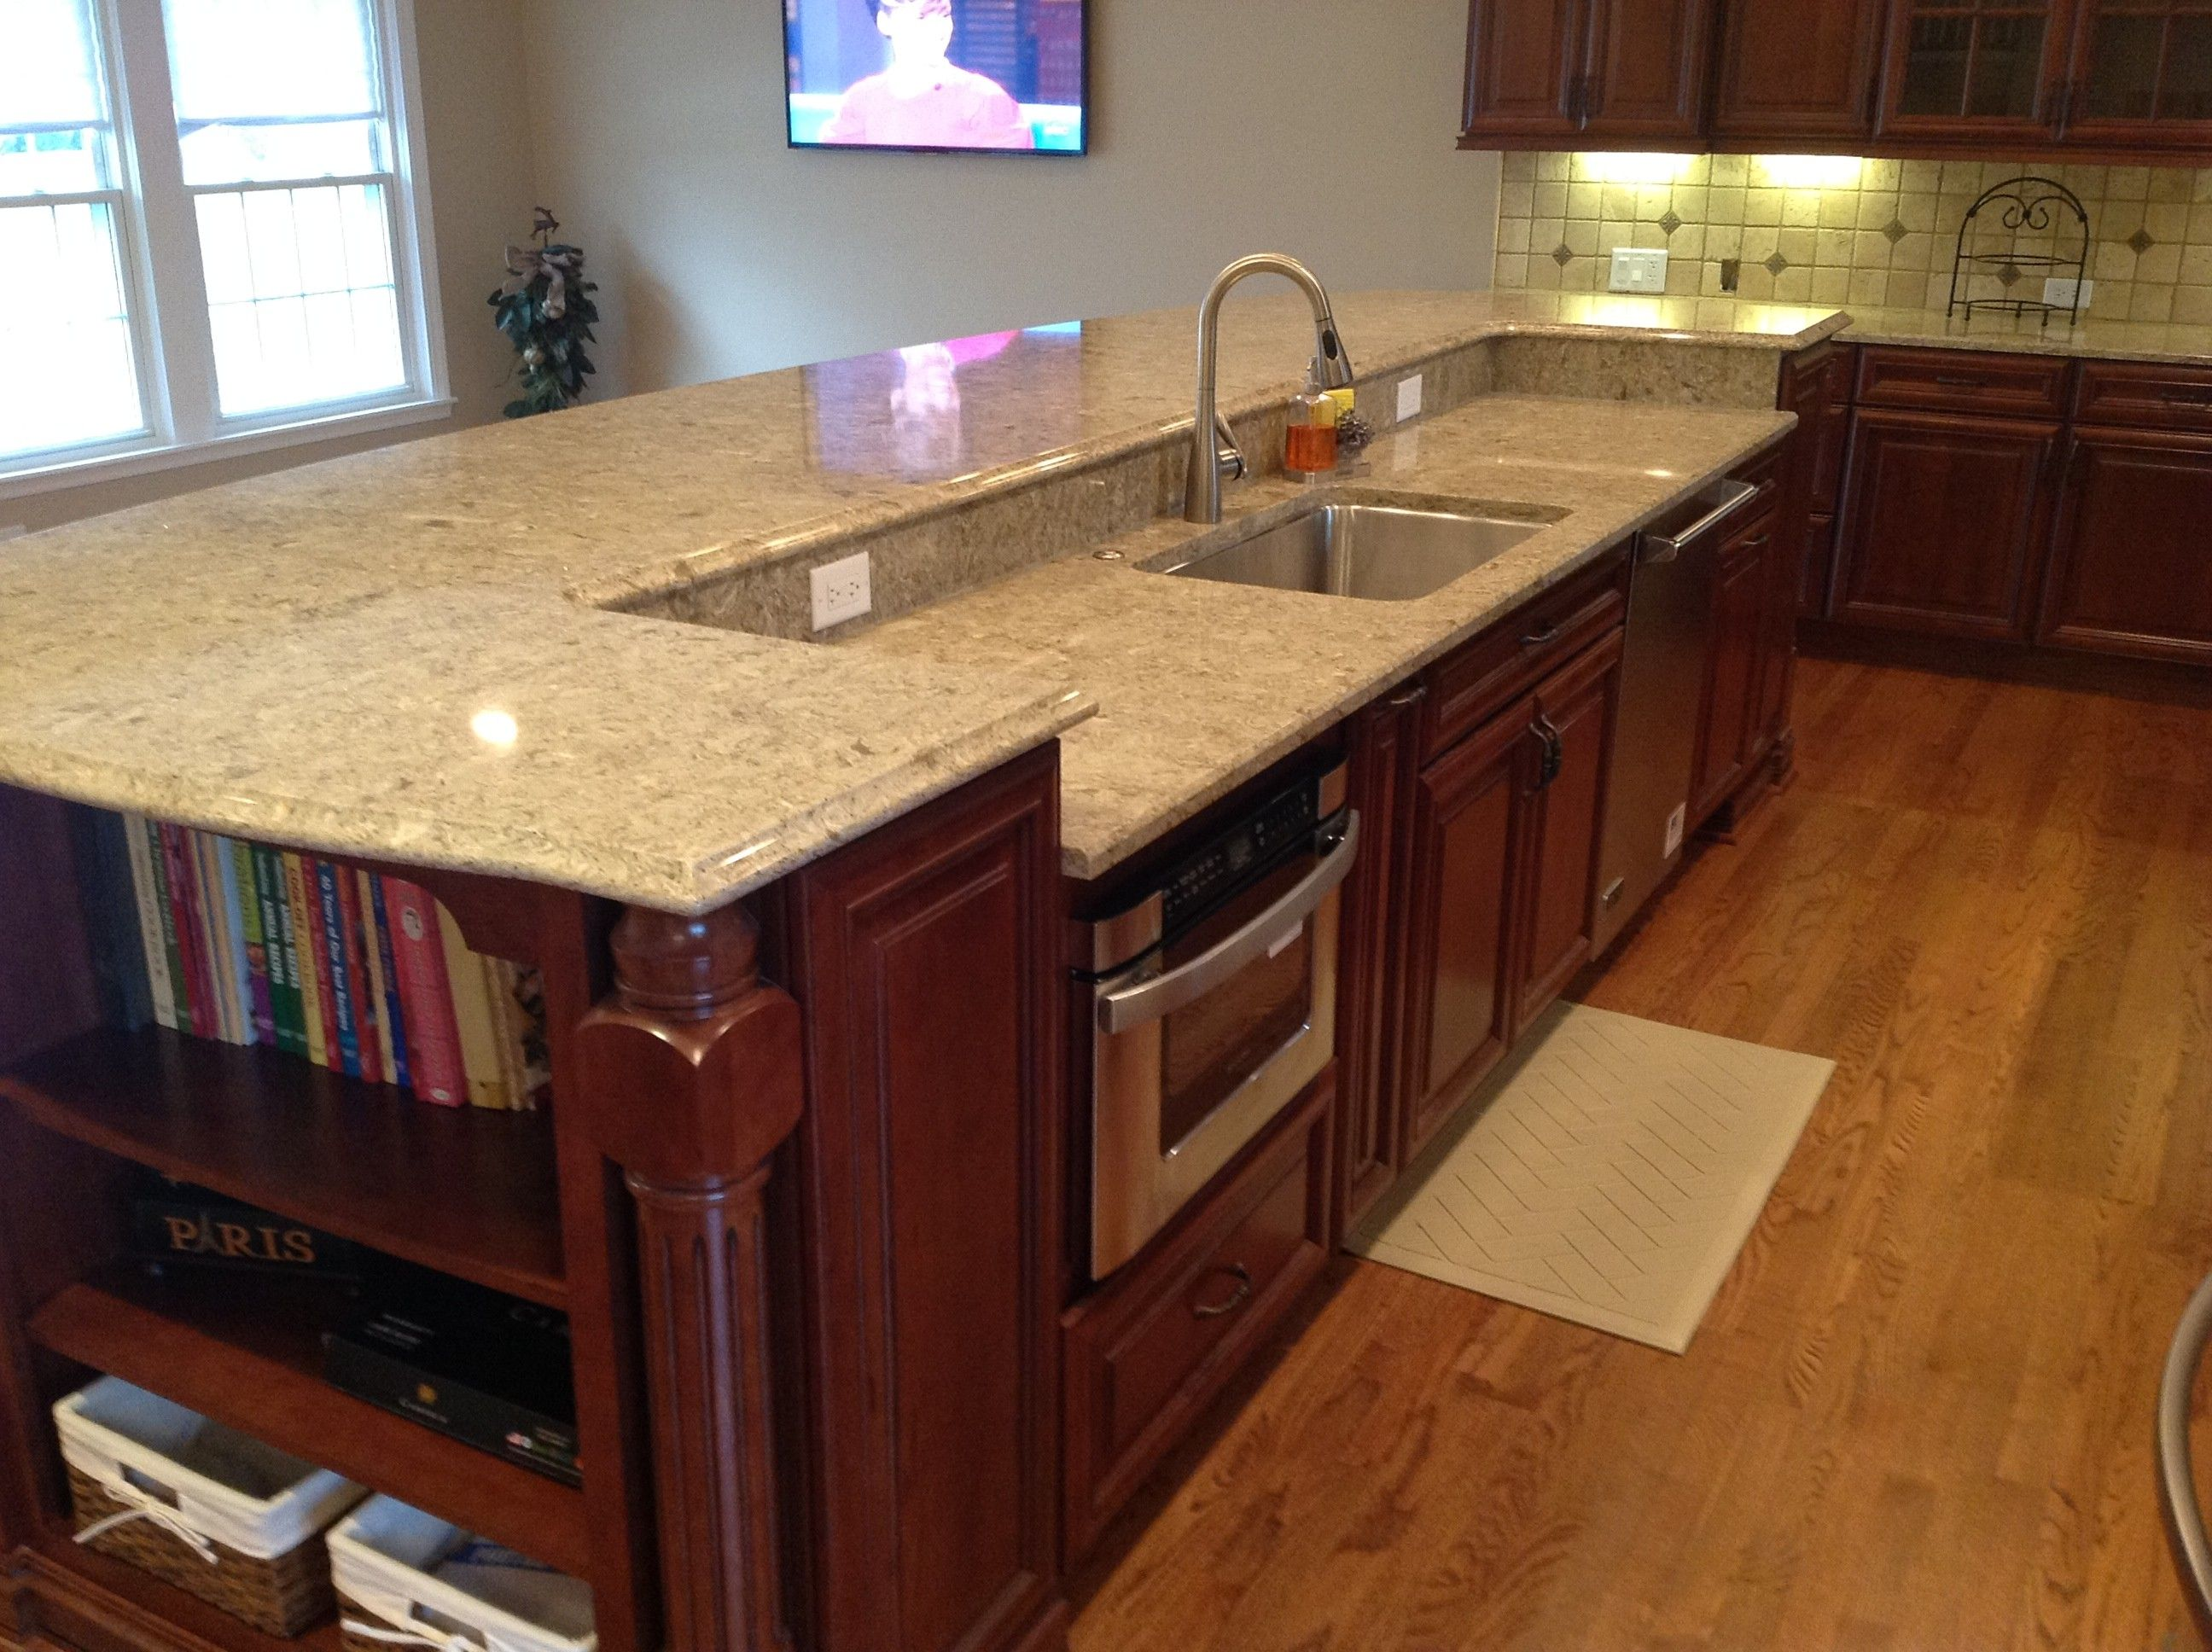 Pin By Red Carpet Construction Remo On New Kitchen 2 In Arlington Heights Il Kitchen Island With Sink Kitchen Island With Sink And Dishwasher Kitchen Island Plans